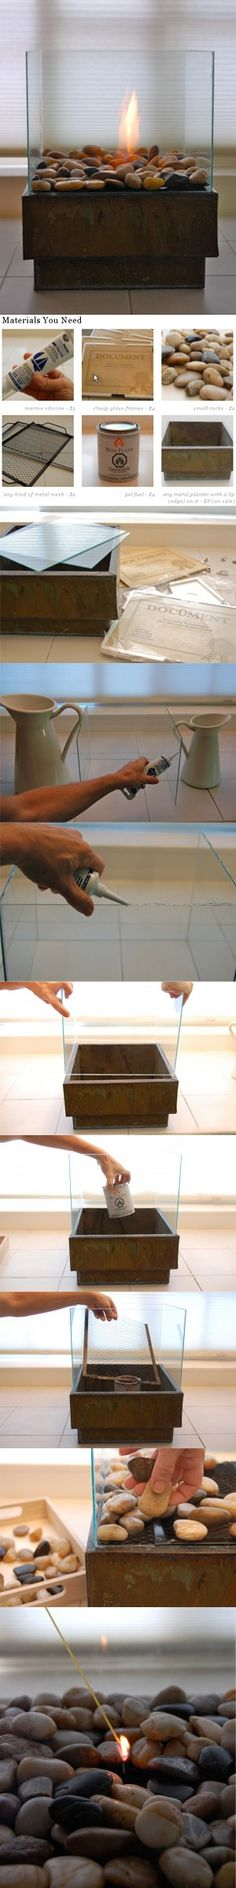 How one can Make a Private Hearth Pit . Supplies: - Marine Silicone   - low cost glass f.... ** Find out even more at the image